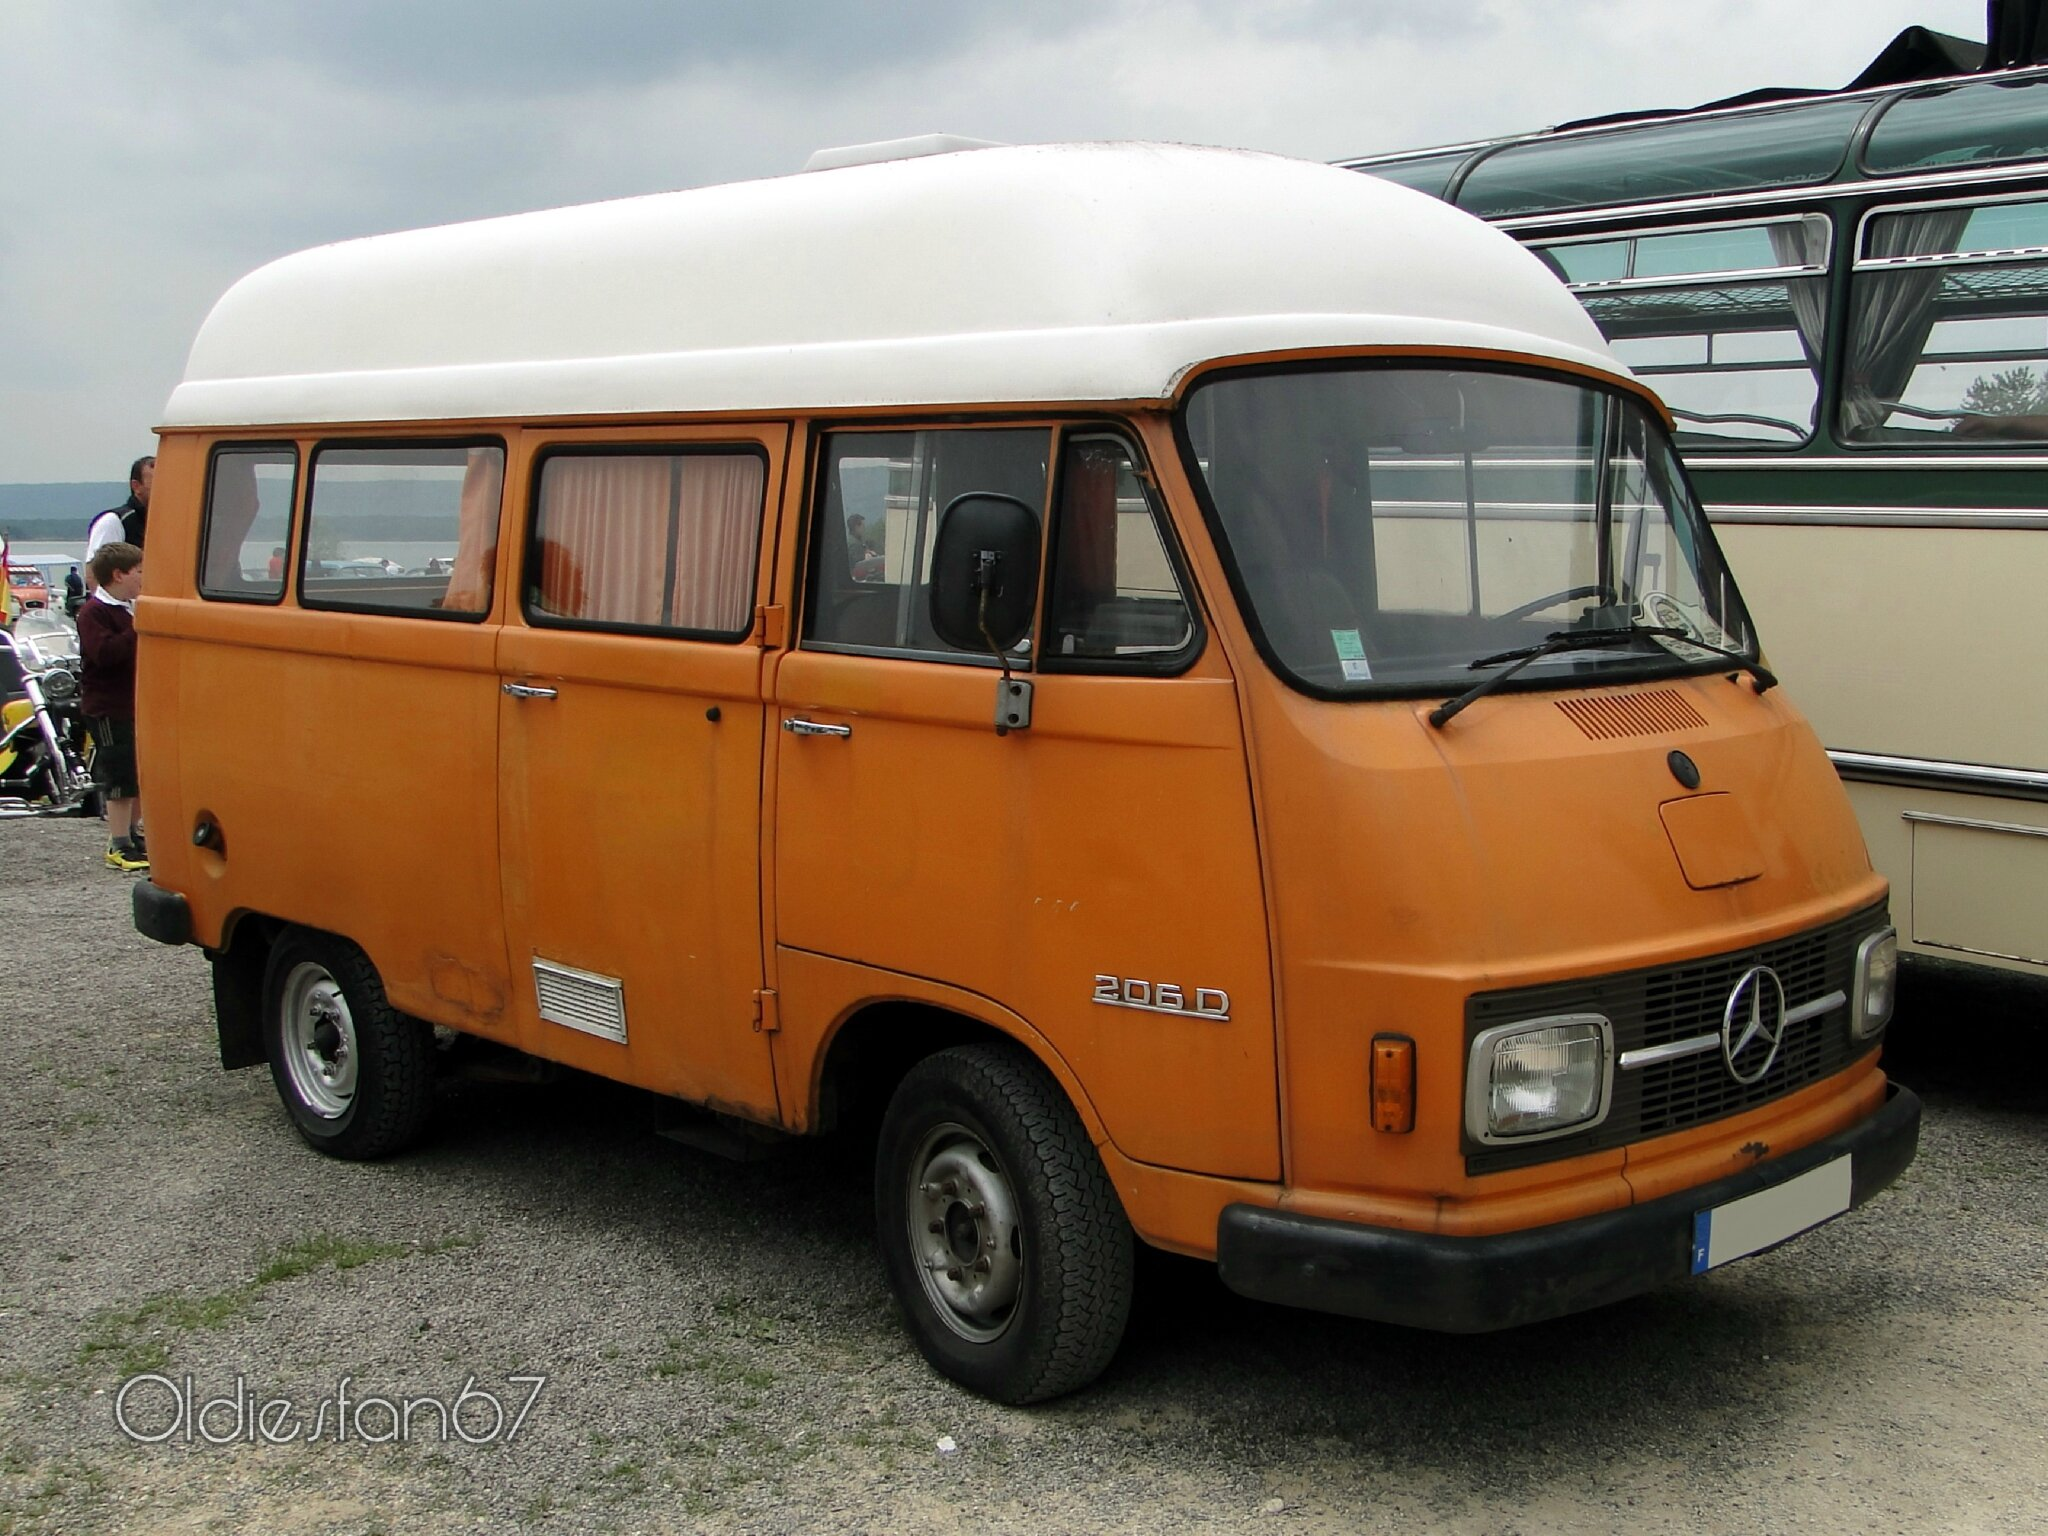 mercedes benz 206 d camping car oldiesfan67 mon blog auto. Black Bedroom Furniture Sets. Home Design Ideas